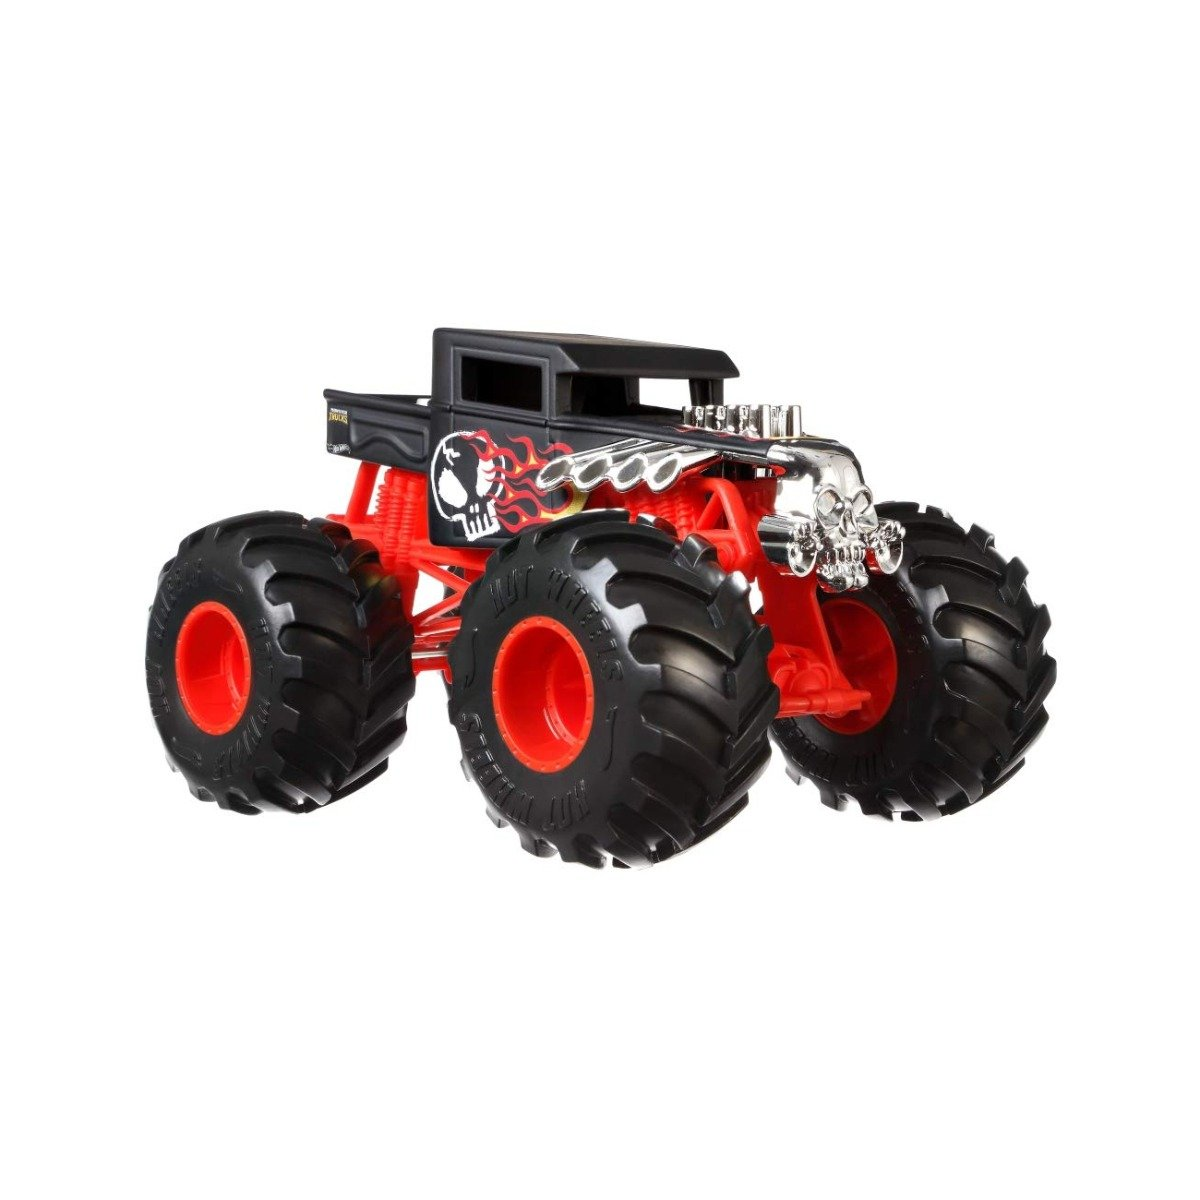 Masinuta Hot Wheels Monster Truck, 1:24, Bone Shaker, GCX15